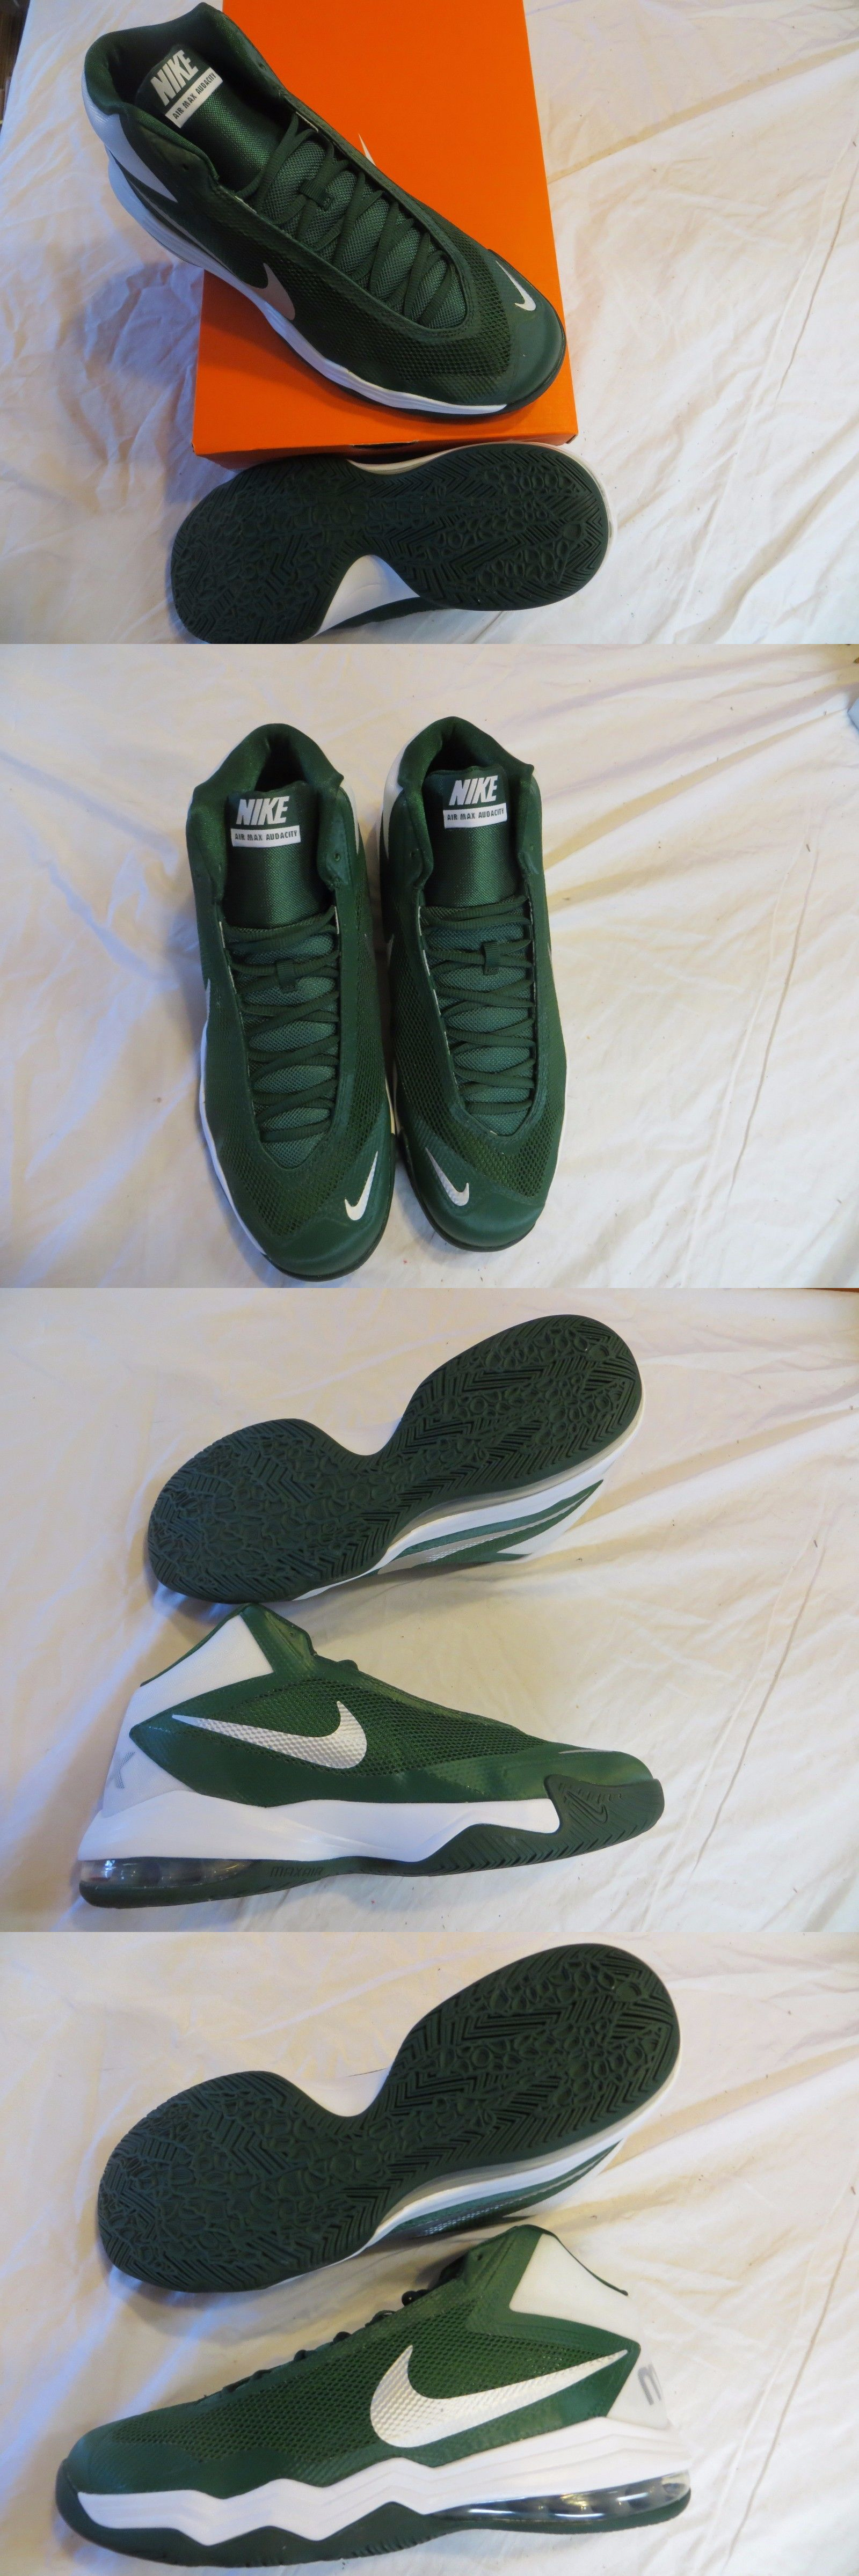 Mixed Items and Lots 63850: Nike Air Max Audacity Tb Anthony Davis Bb Shoes  Sz